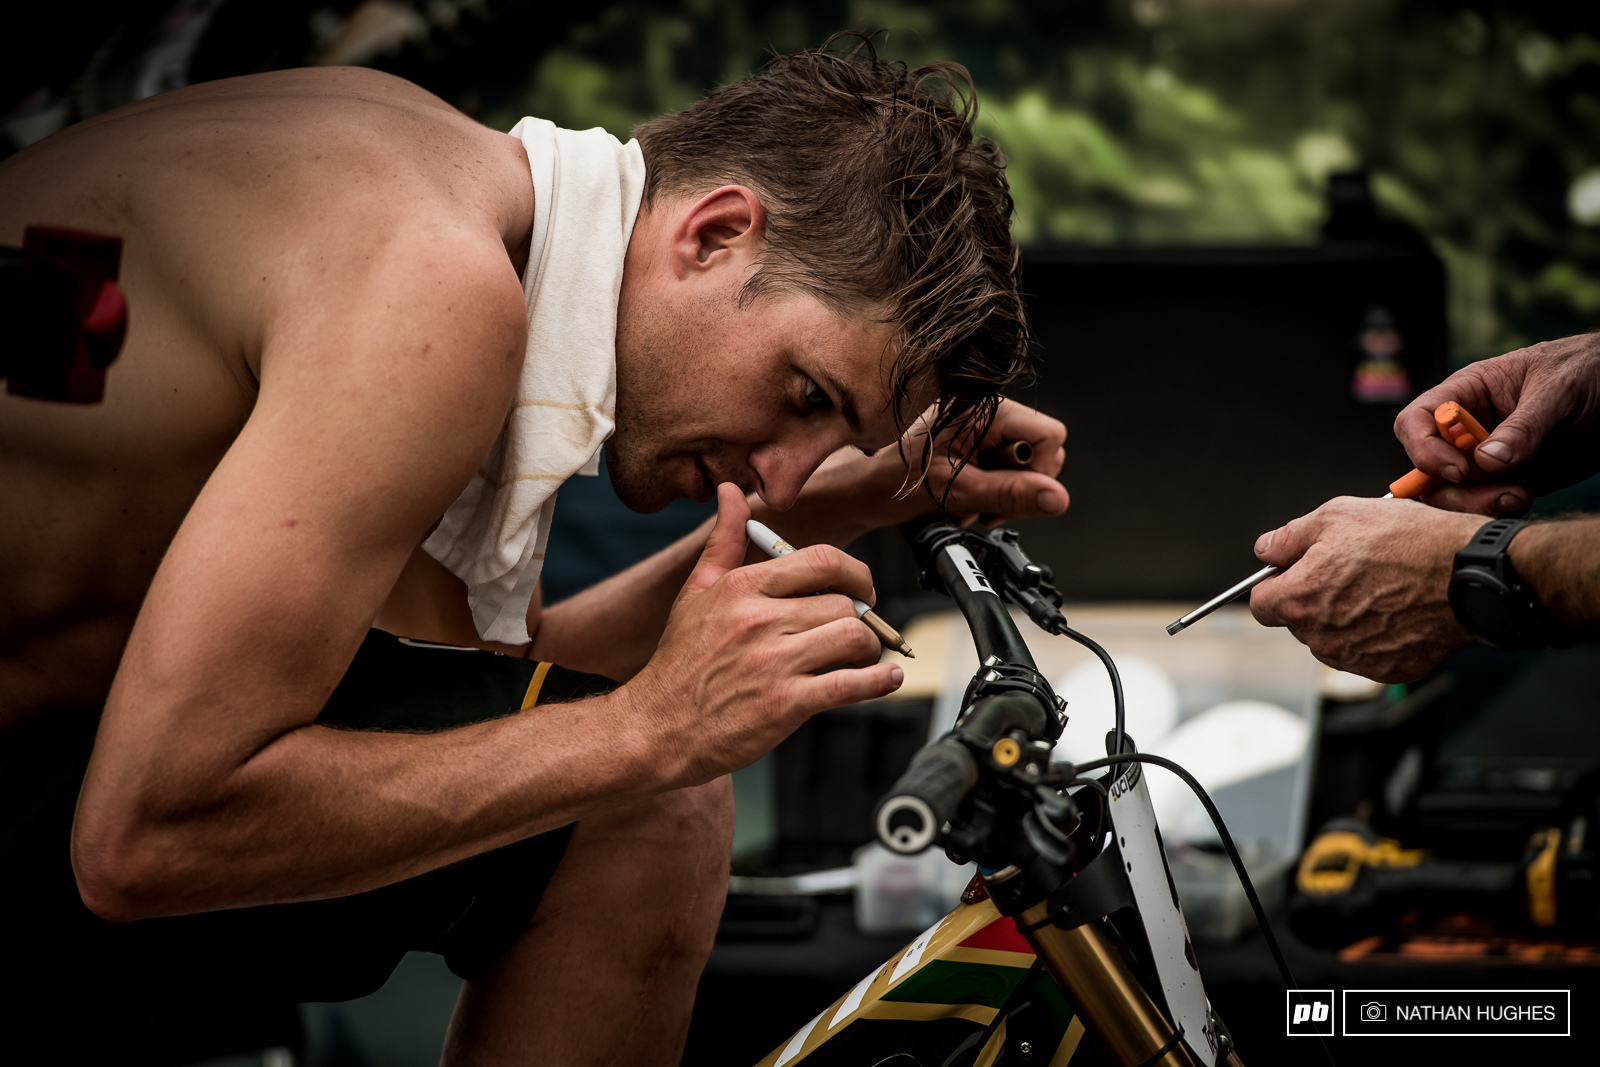 The devil is in the details... Minnaar does hard time in the pits after seeding with his mechanic to get things perfect... More perfect.